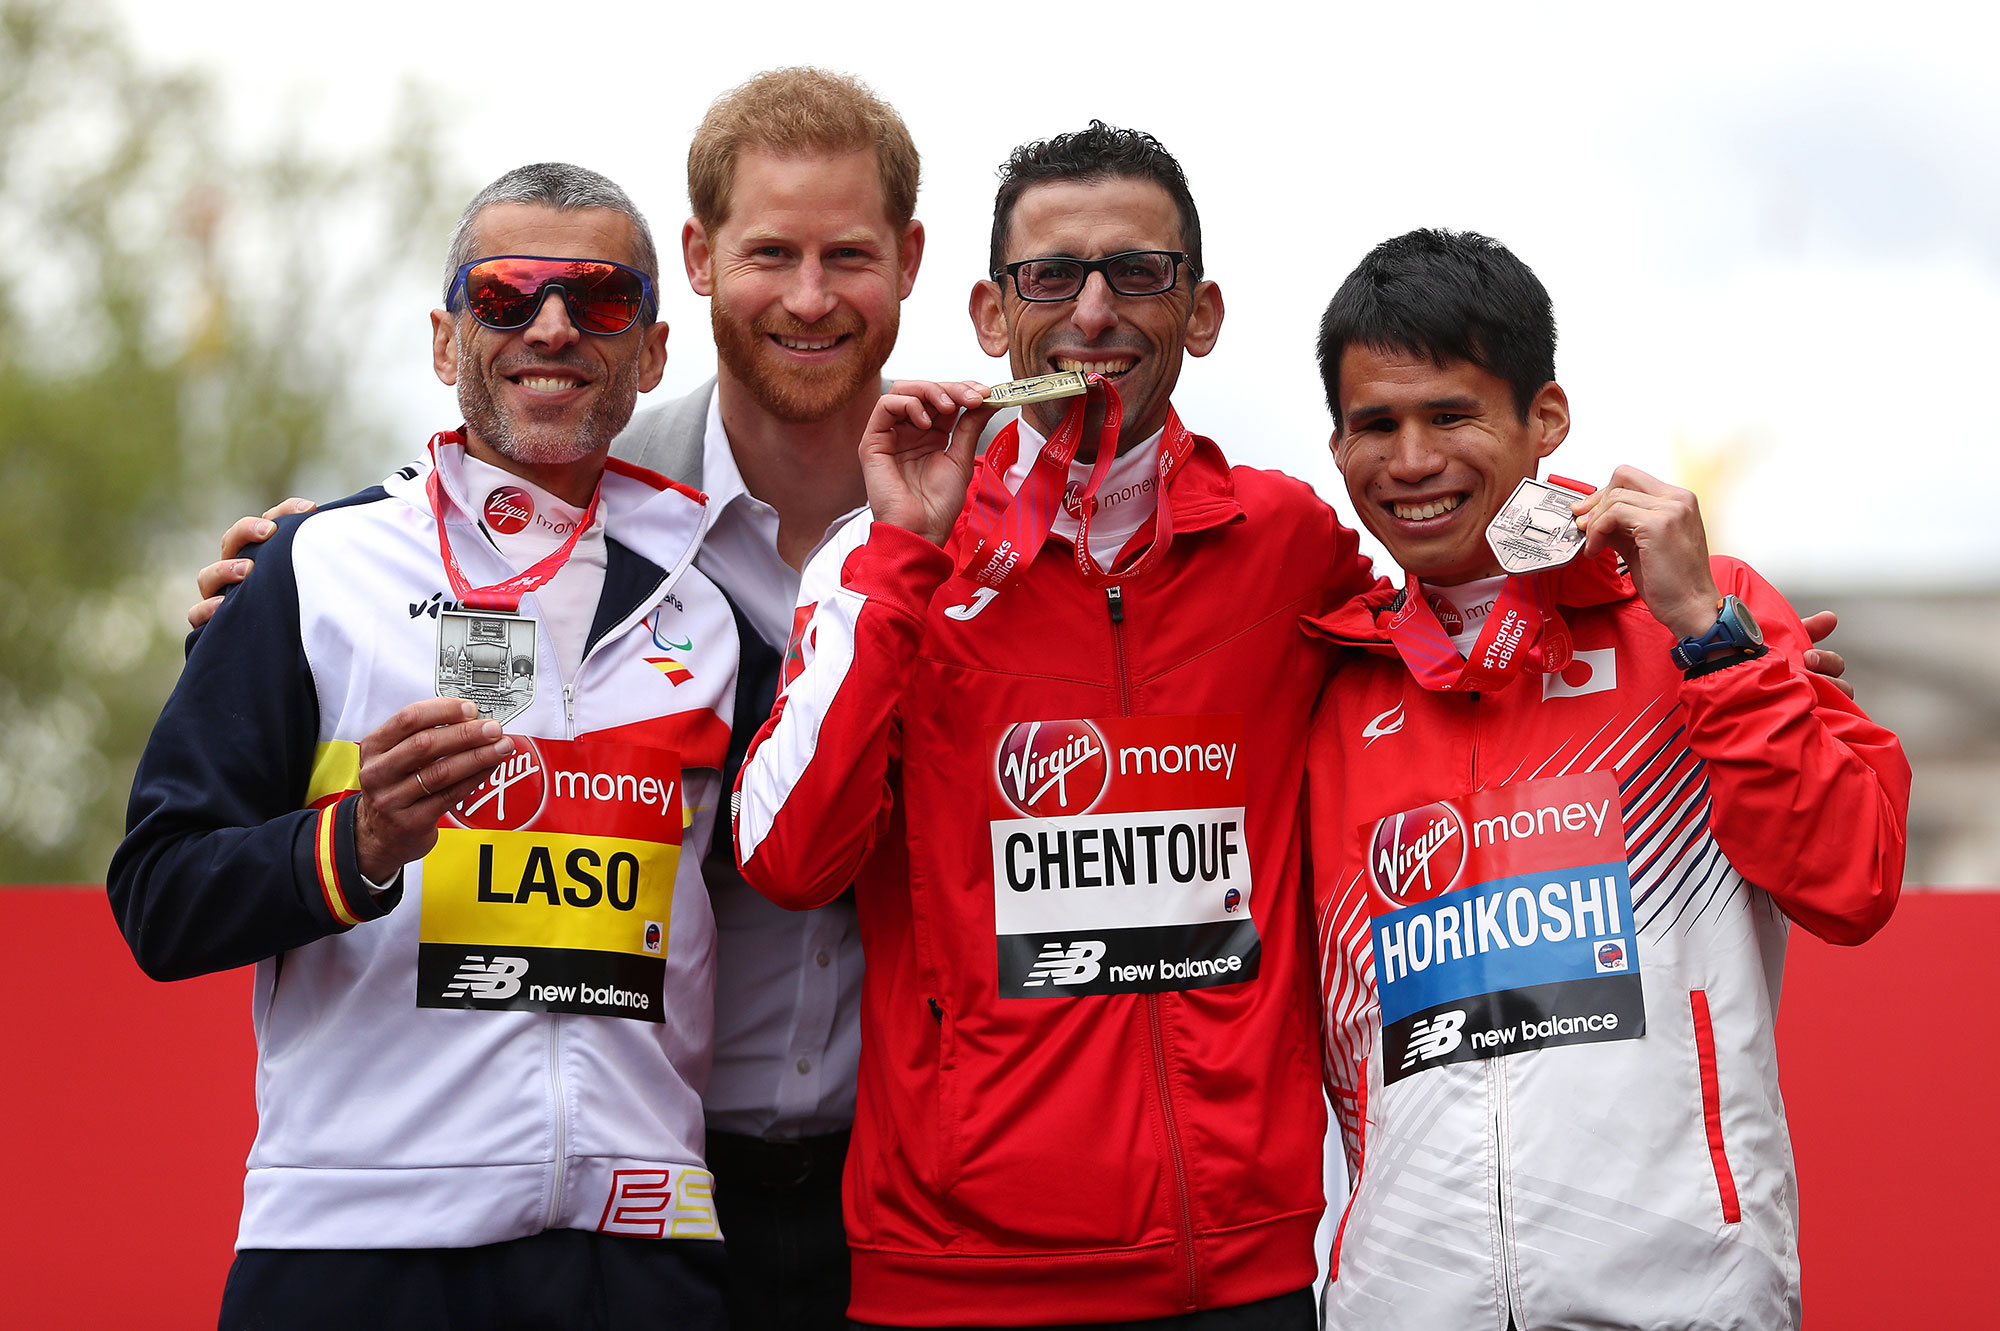 LONDON, ENGLAND - APRIL 28: Alberto Suarez Laso of Spain (2nd), El Amin Chentouf of Morocco (1st) and Tadashi Horikoshi of Japan celebrate their respective finishing positions in the T12 Men's race with Prince Harry,